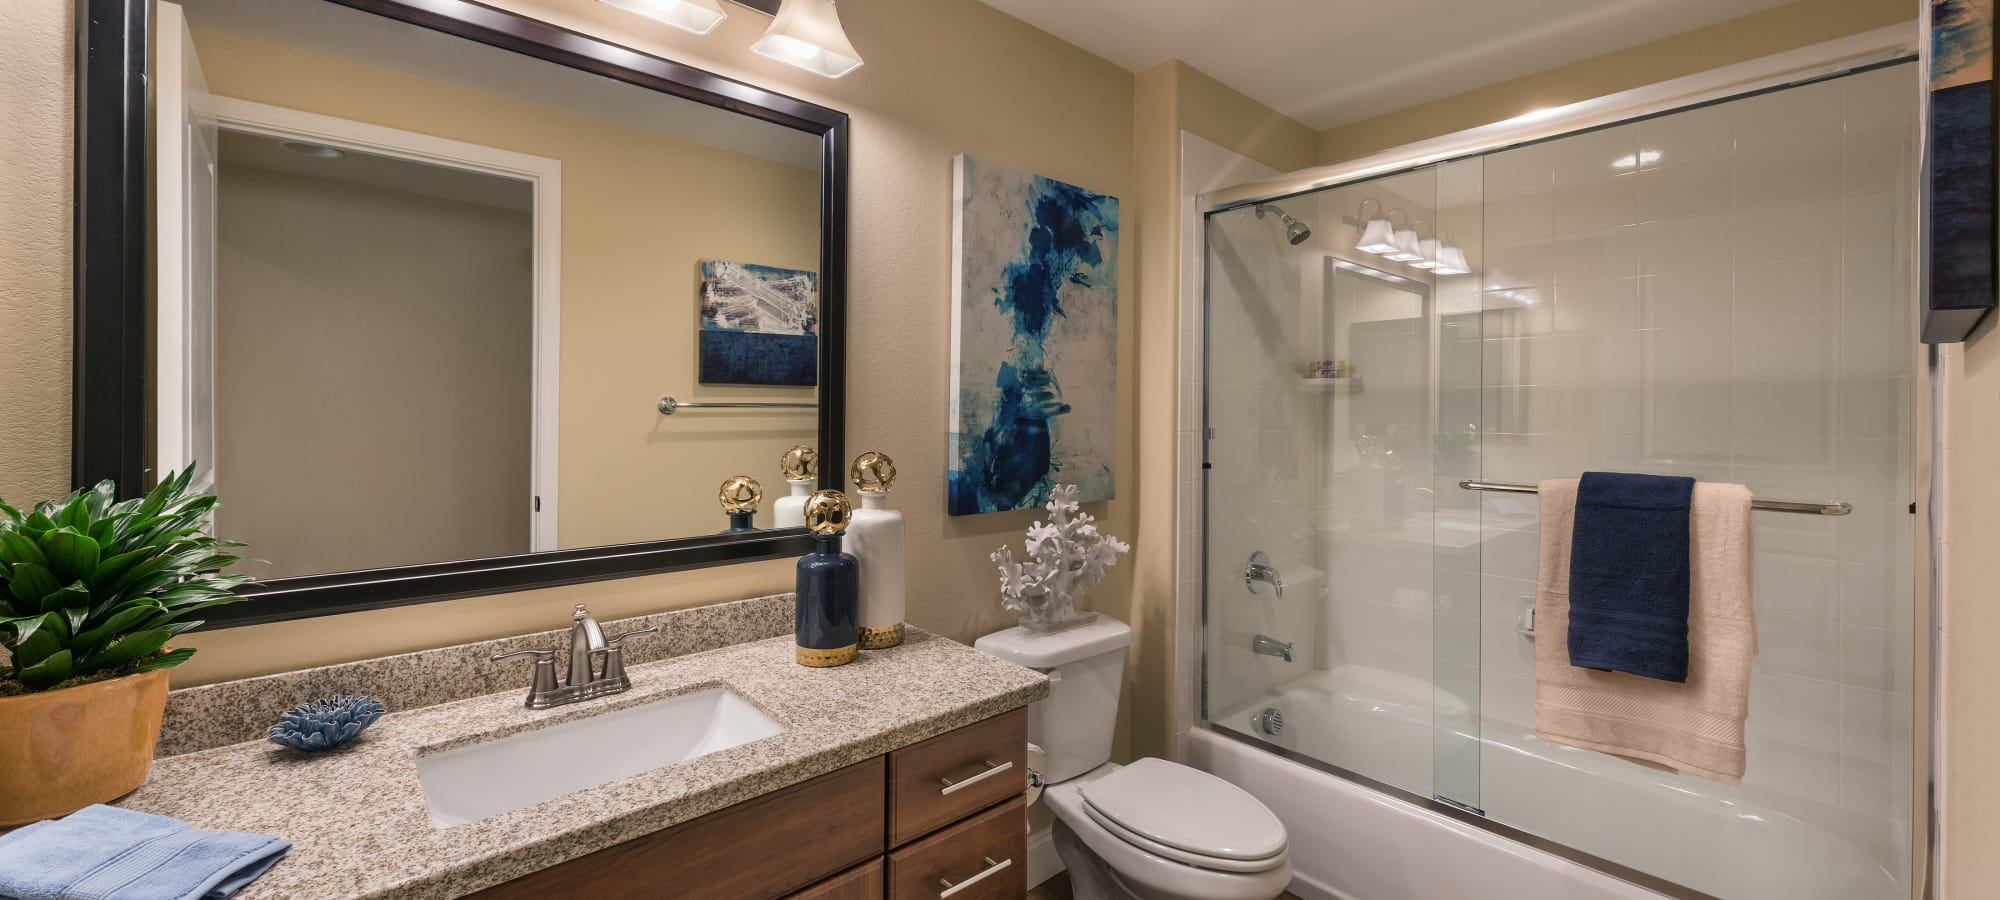 Beautiful model bathroom at San Portales in Scottsdale, Arizona